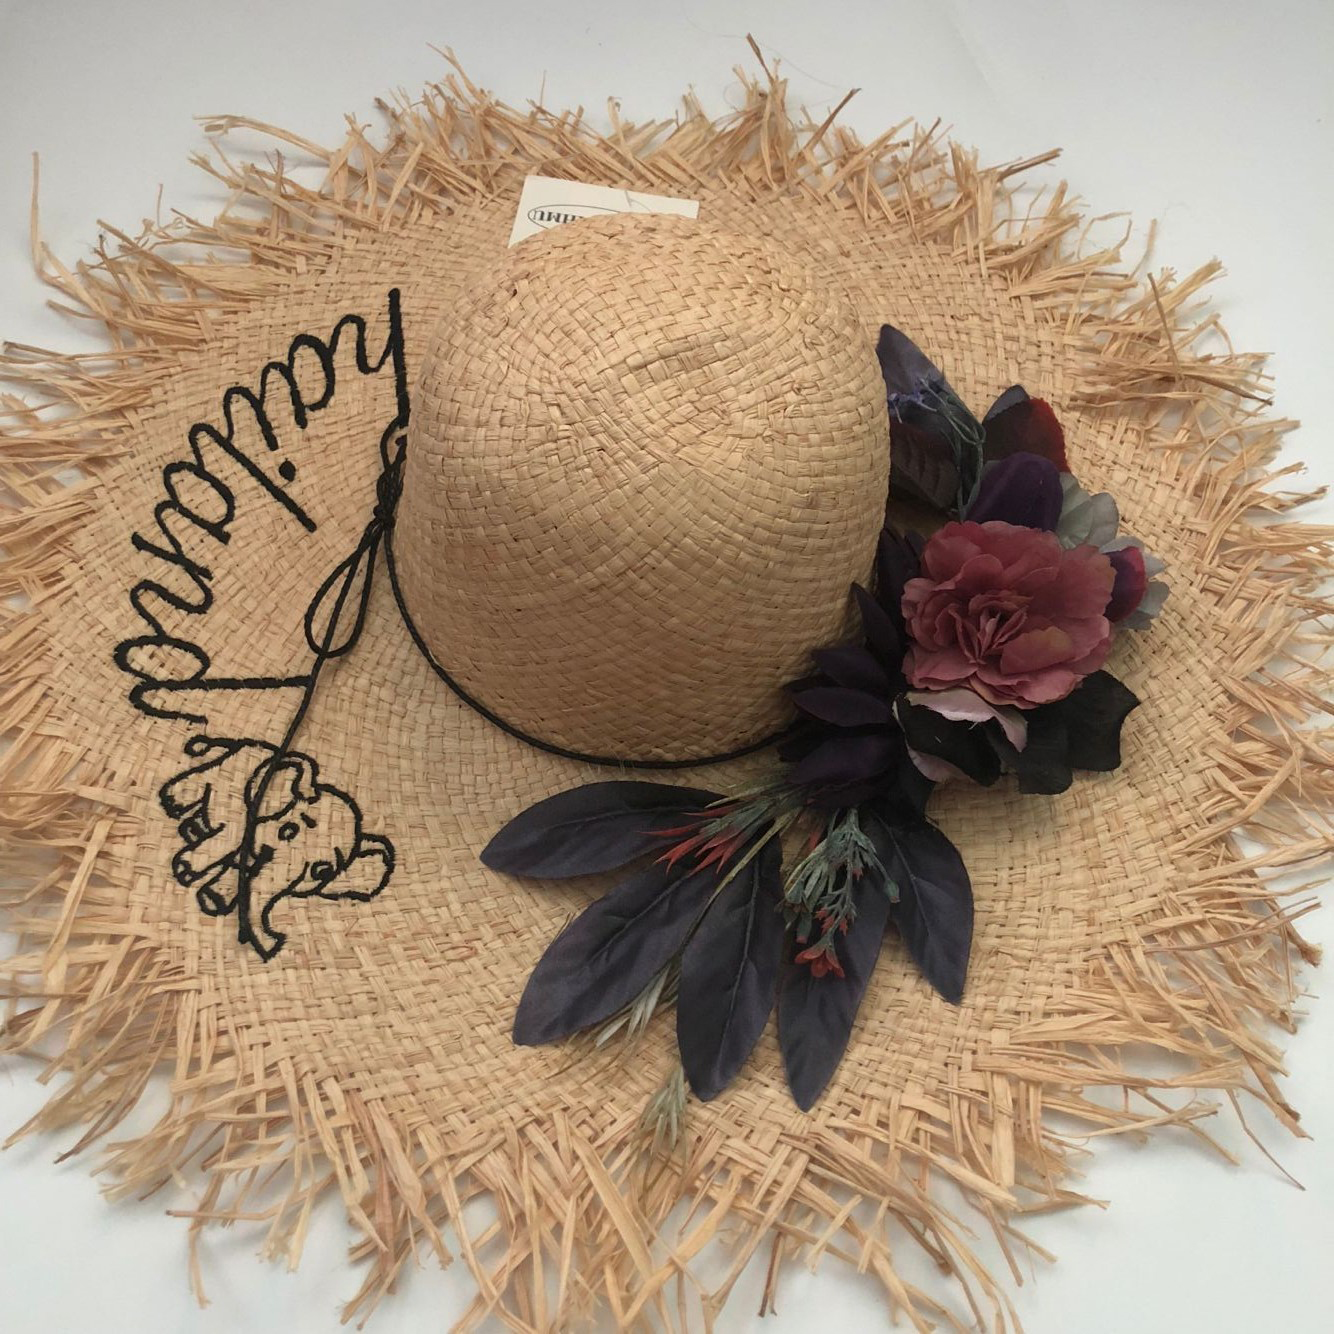 Casual Solid Floral Letter Selling Sun hats For Women Gilr Summer Vintage Straw Beach Outdoor Caps 2019 New Apparel Accessories in Women 39 s Sun Hats from Apparel Accessories